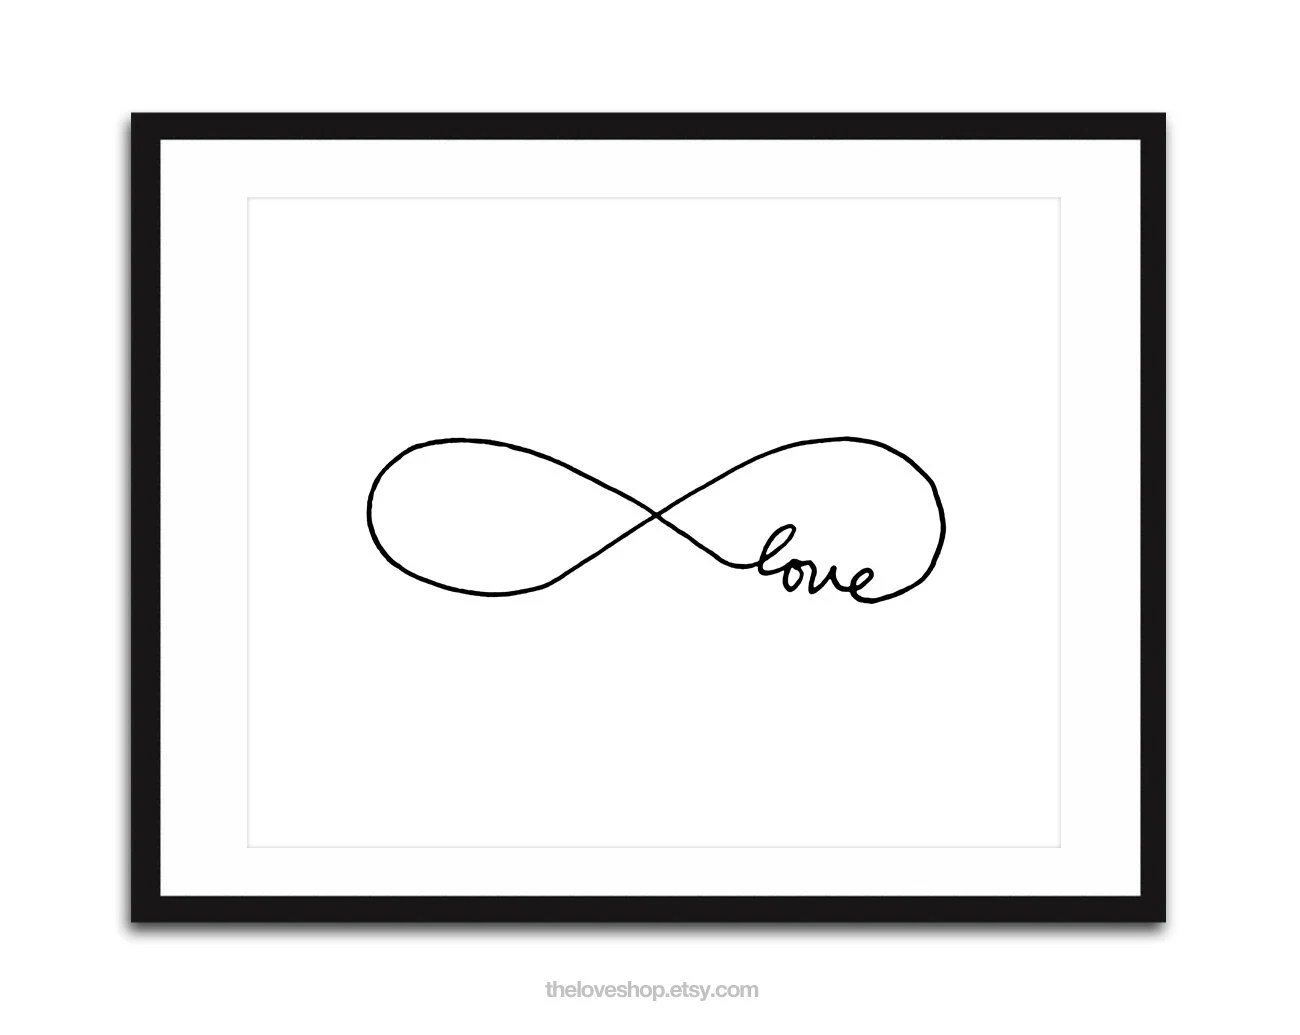 Endless Love -  Infinity, 16x20 inches on A2 Poster (in Crisp White and Black)